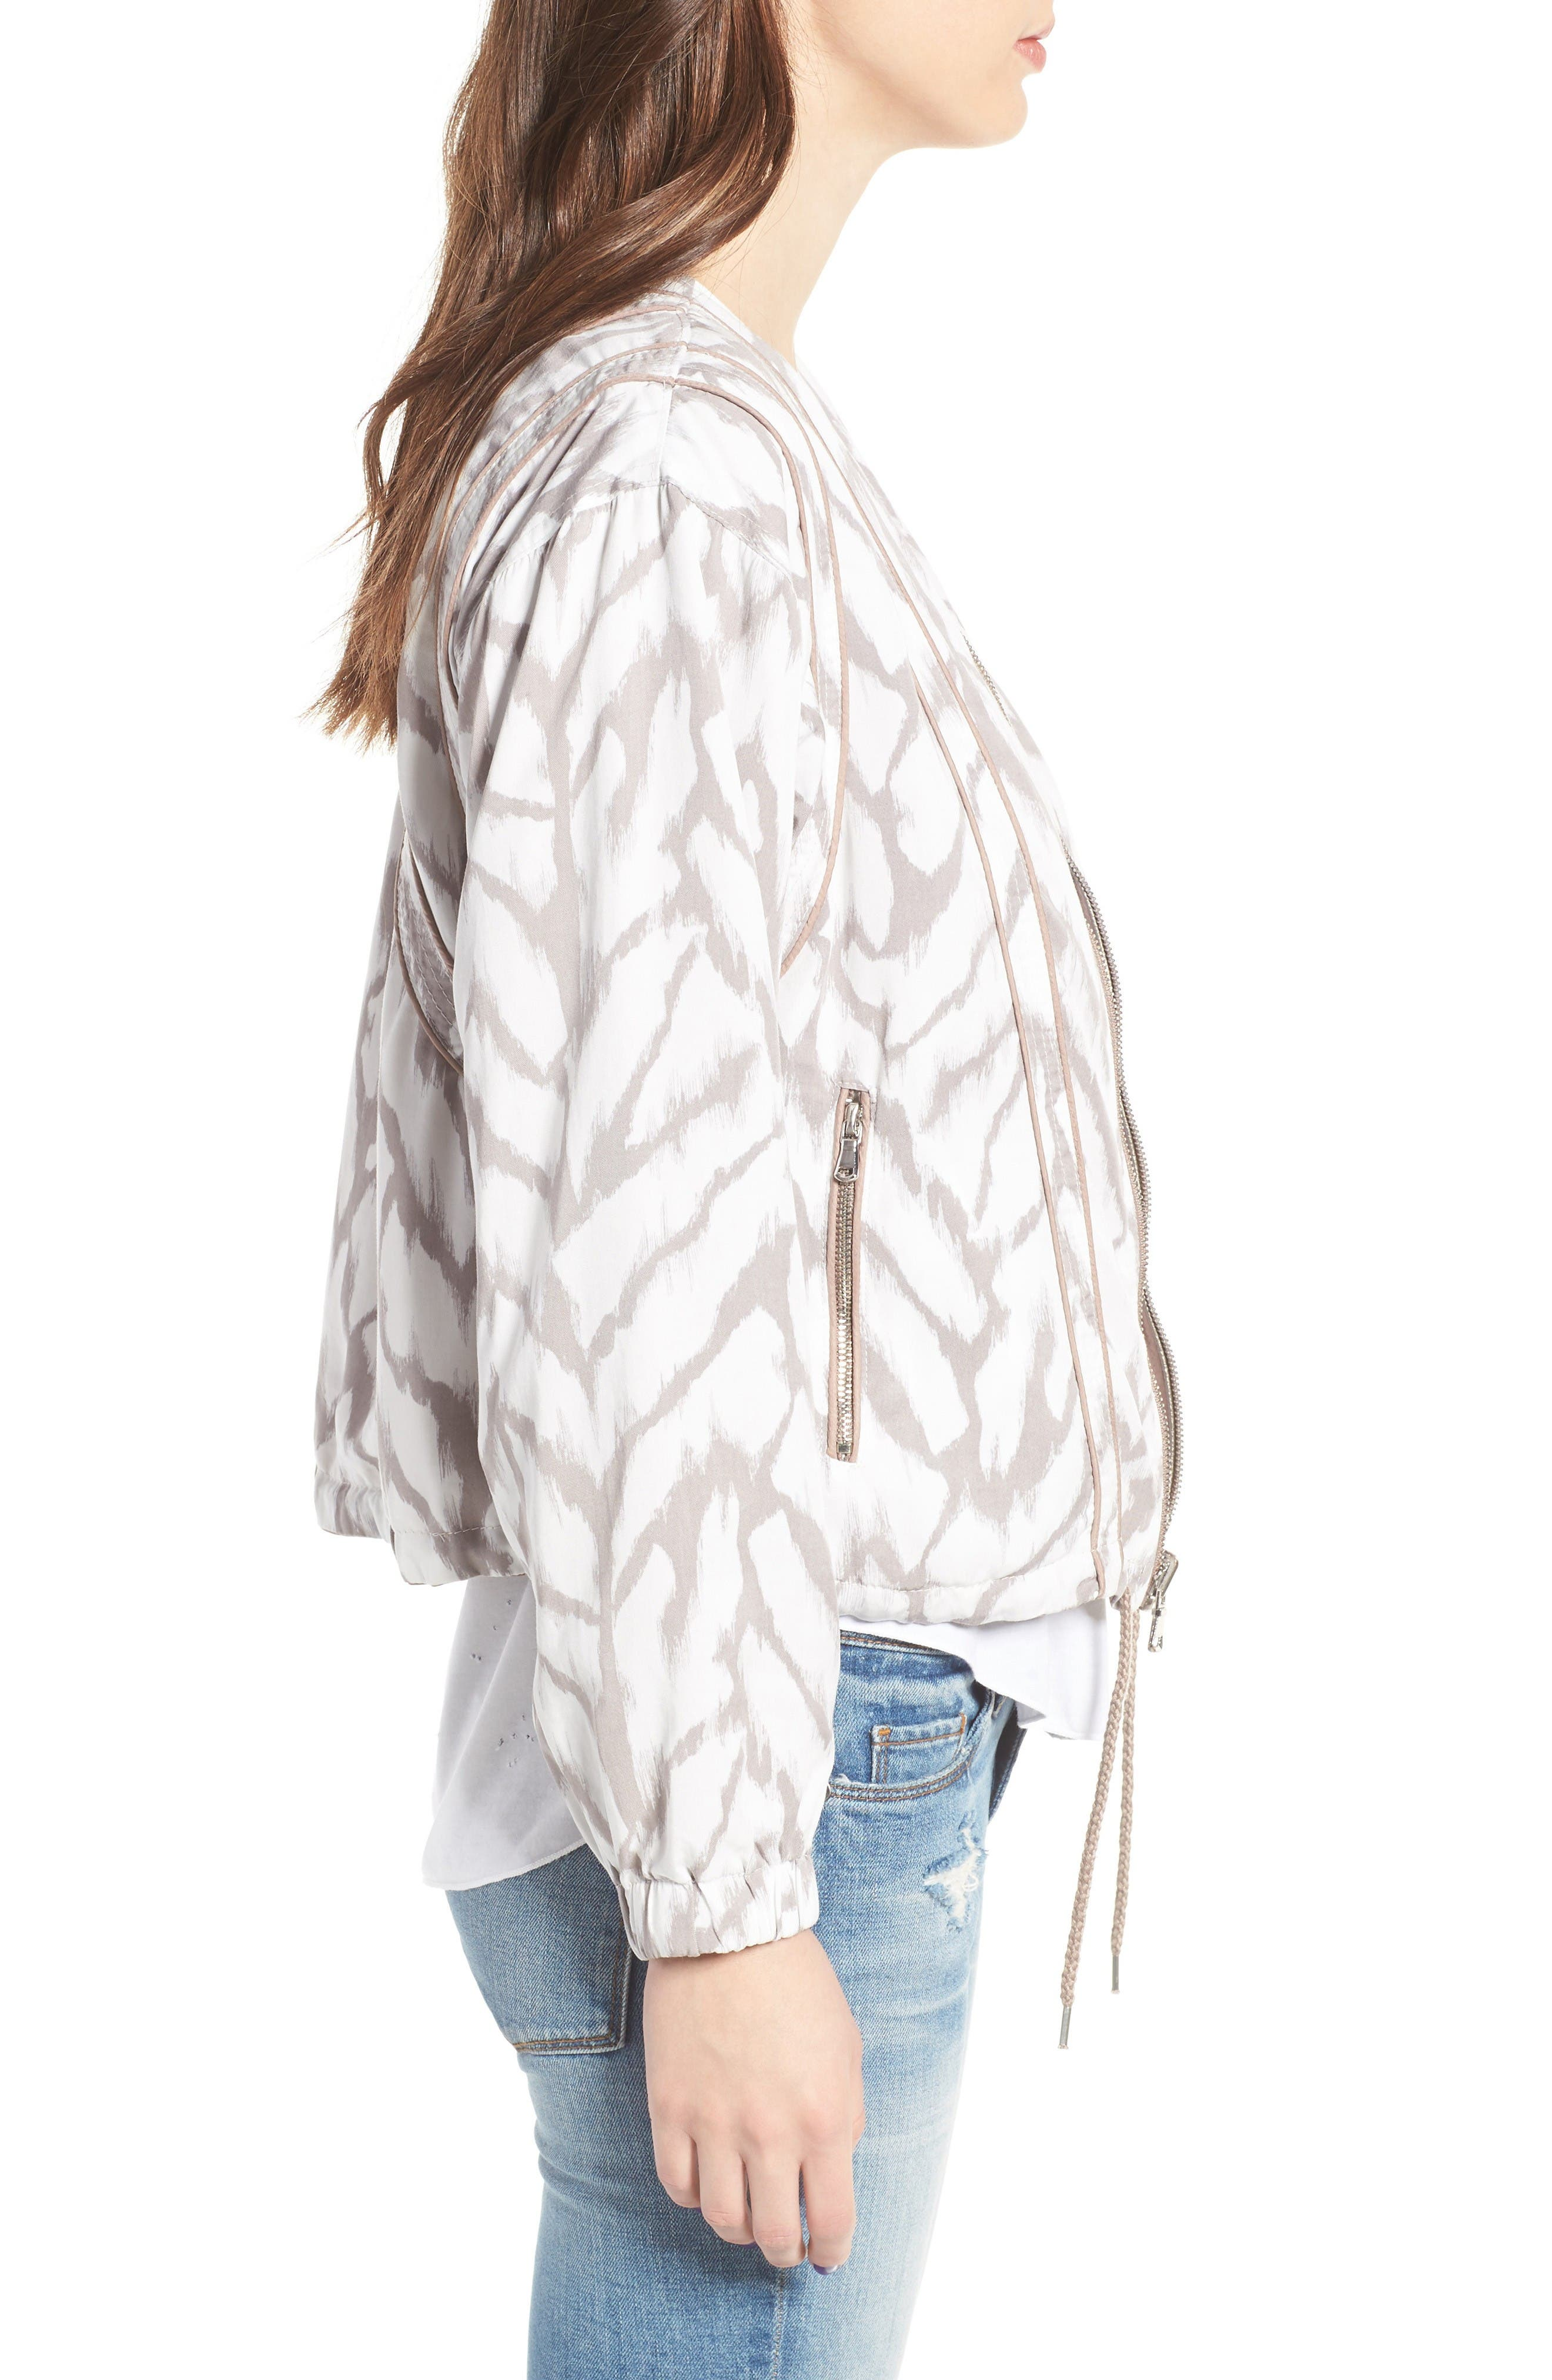 Deep Truth Reversible Jacket,                             Alternate thumbnail 5, color,                             Deep Truth Taupe/ White Print